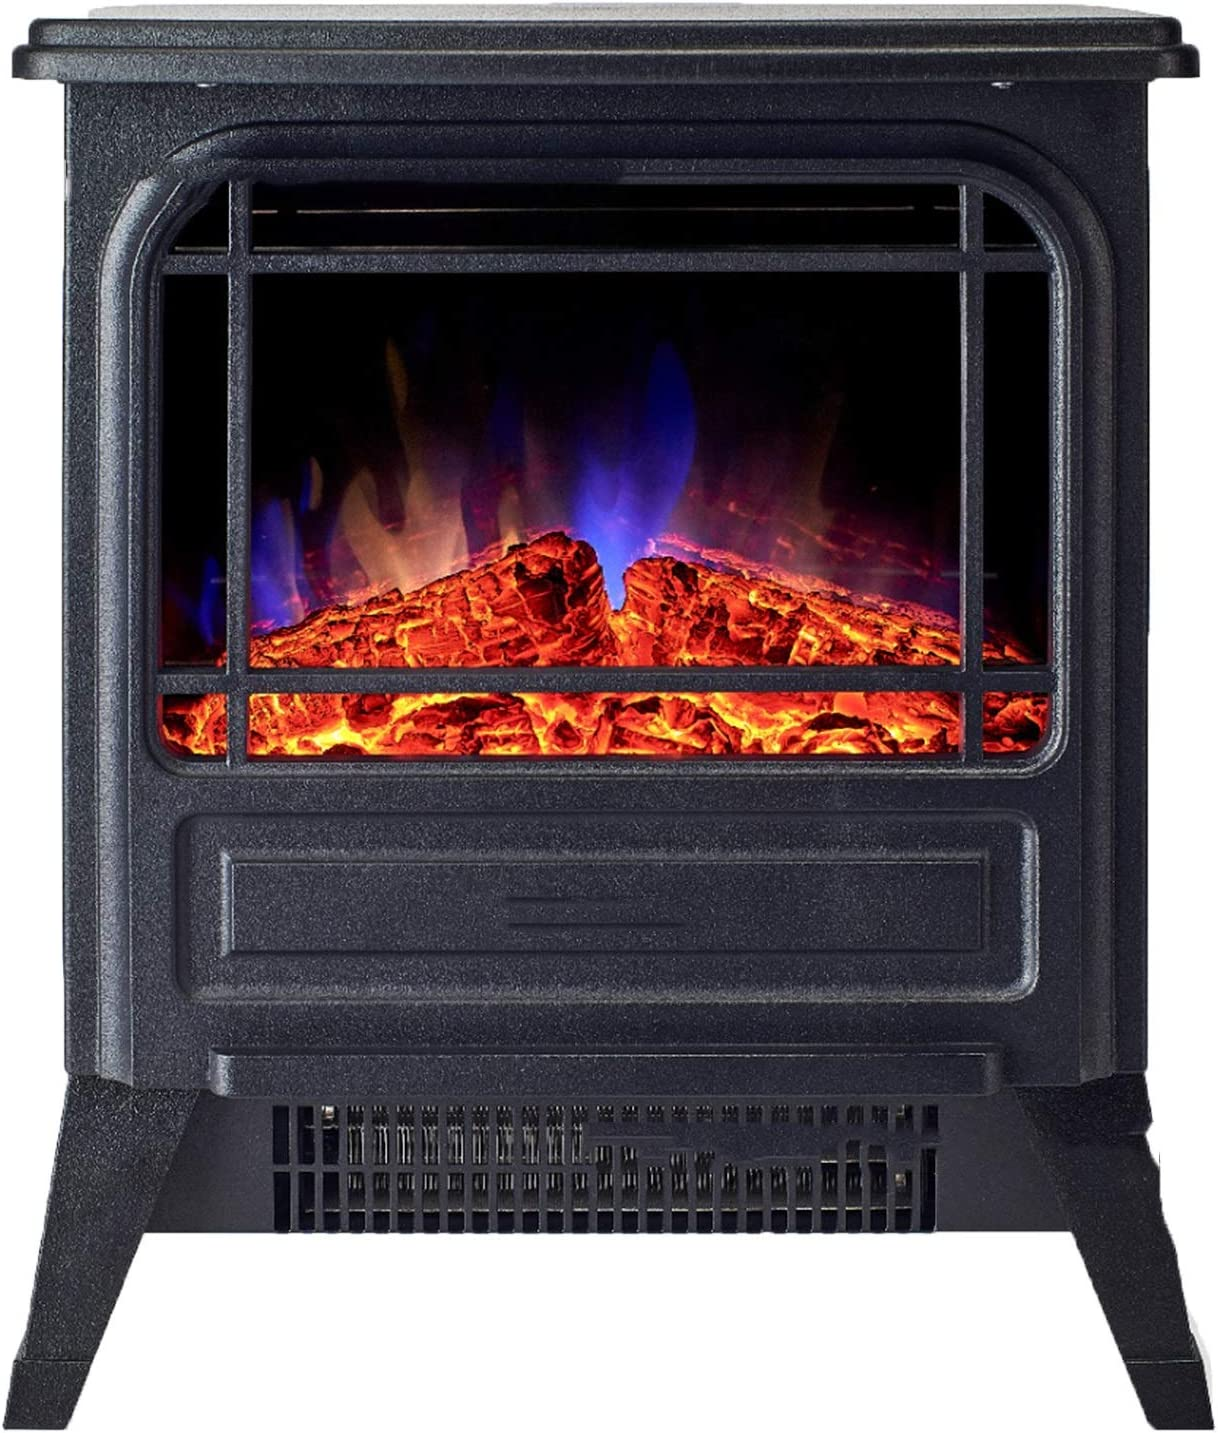 ALBBMY Easy-to-use Electric Fireplace Attention brand 1600W Standing Firepl Vintage